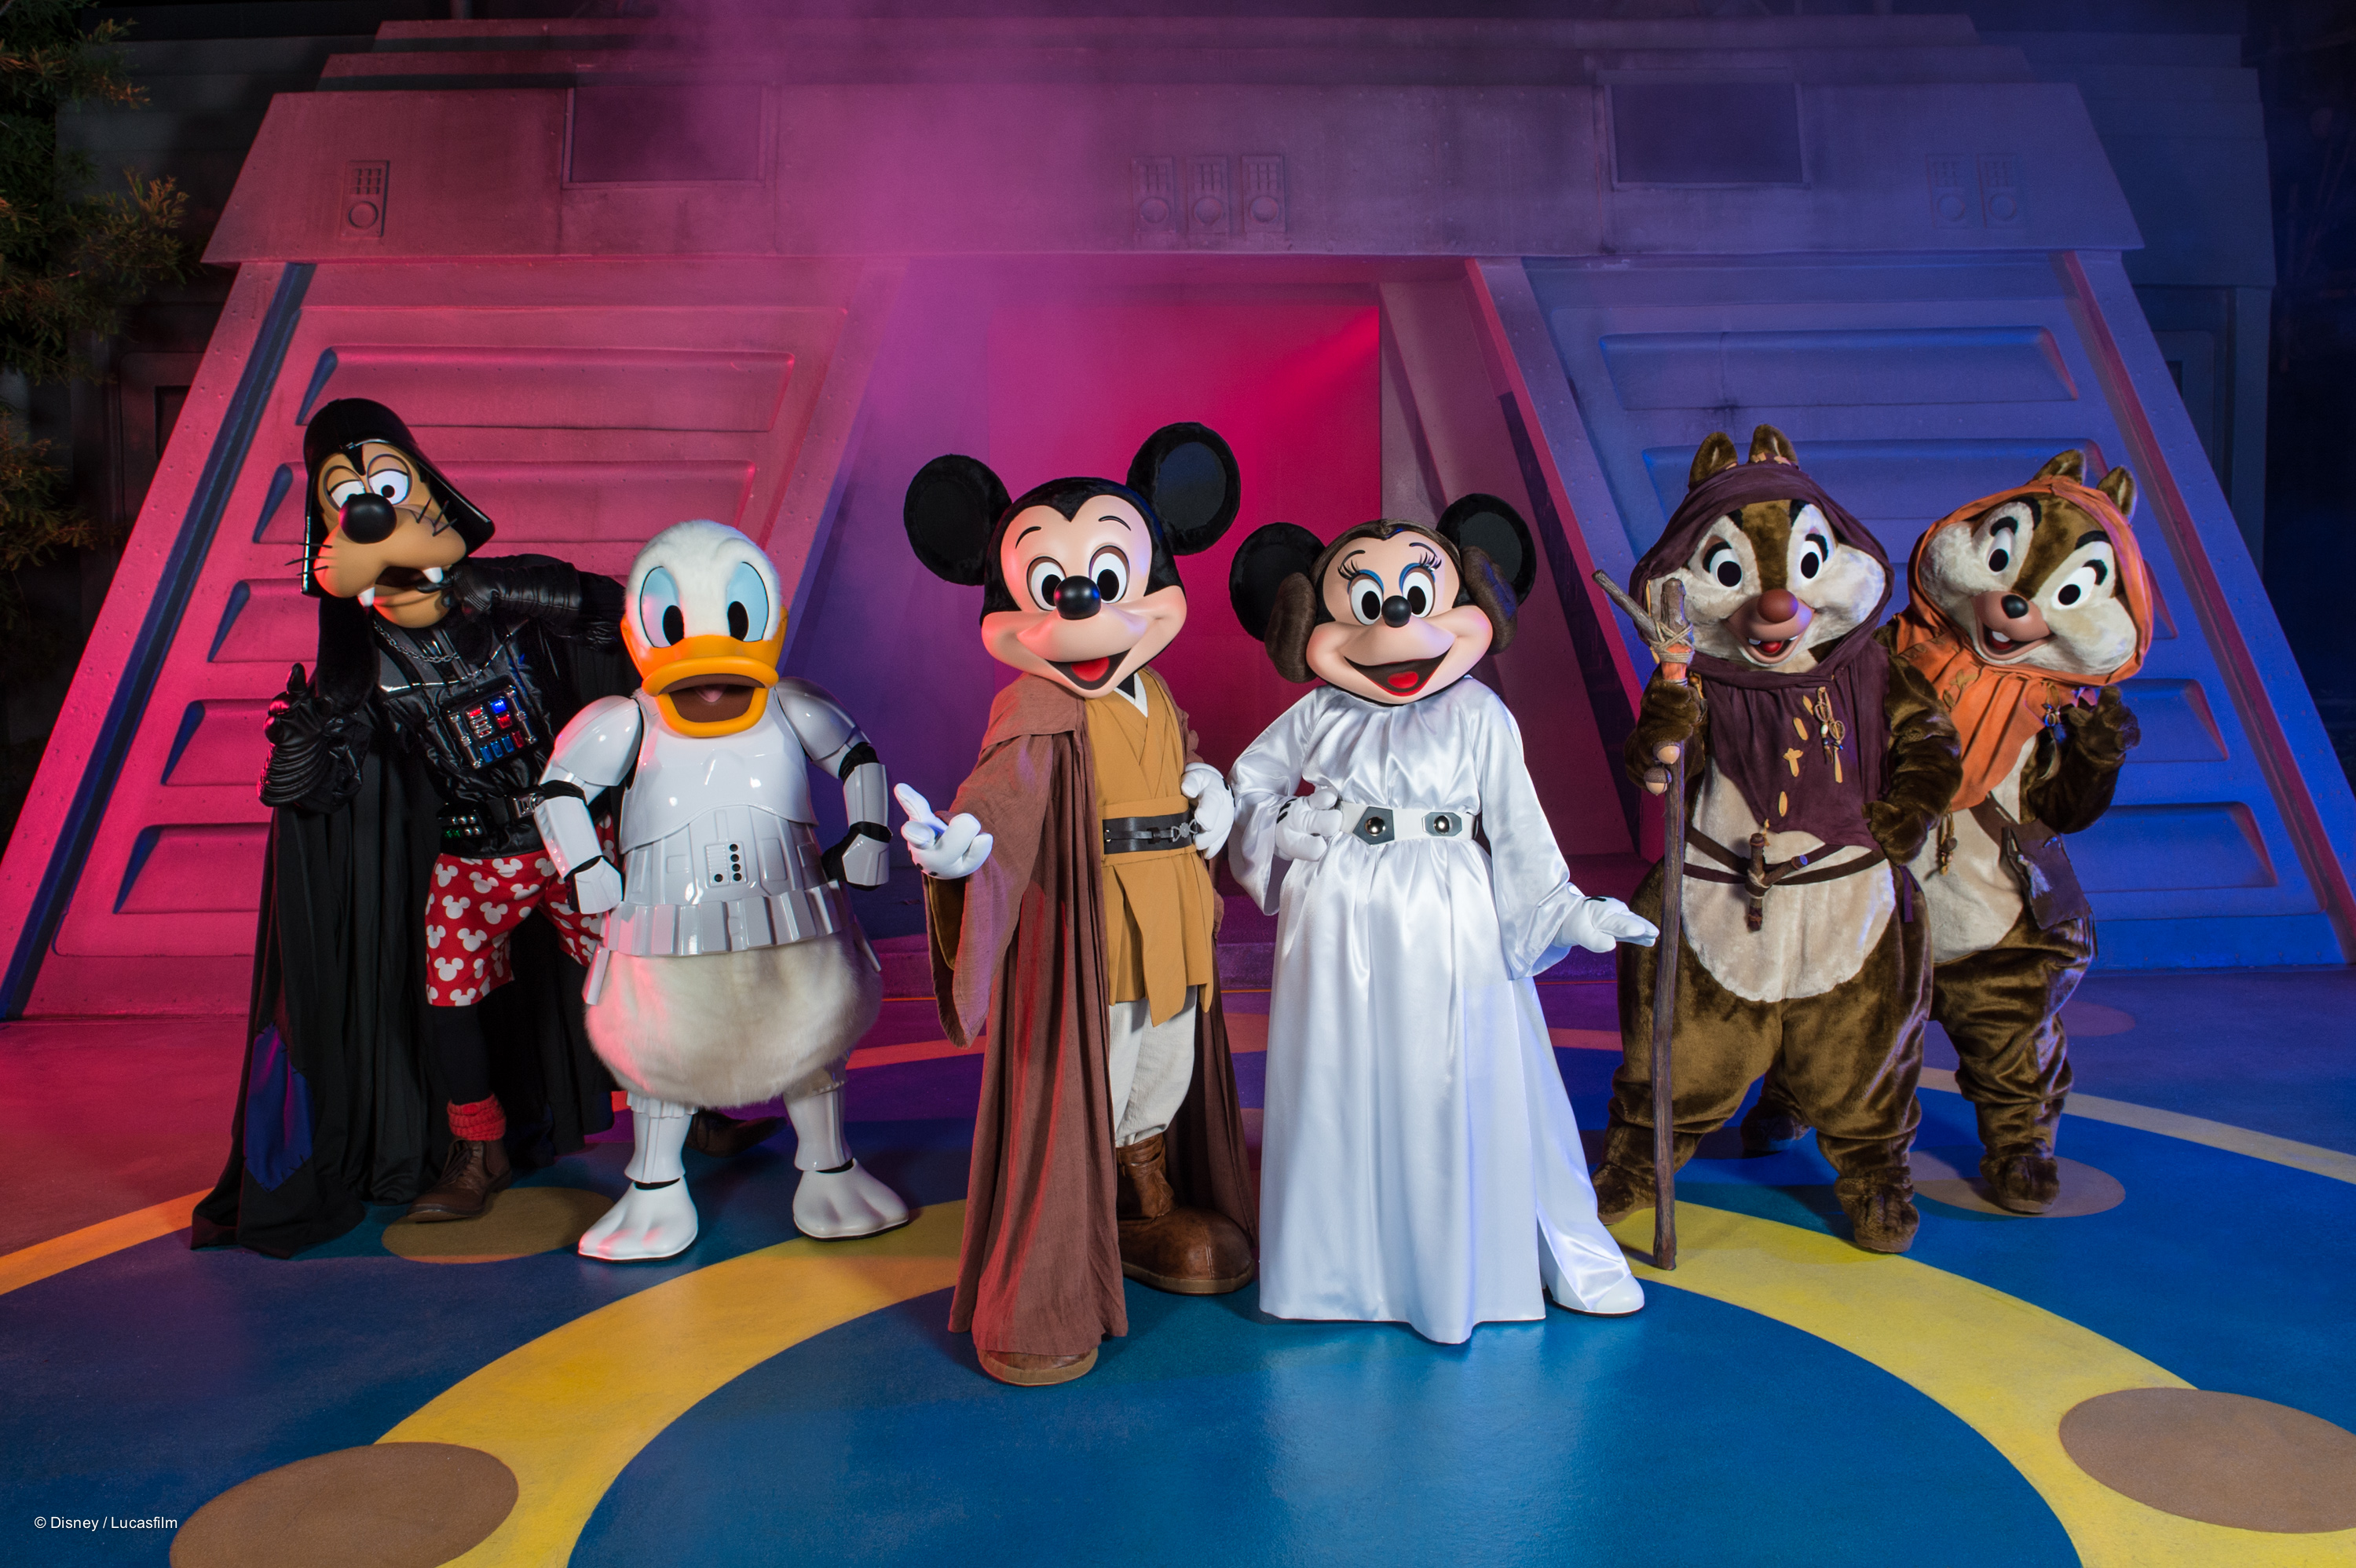 Jedi Mickey, Princess Leia Minnie, Chip n Dale Ewoks, Darth Goofy, Stormtrooper Donald at Star Wars Weekends